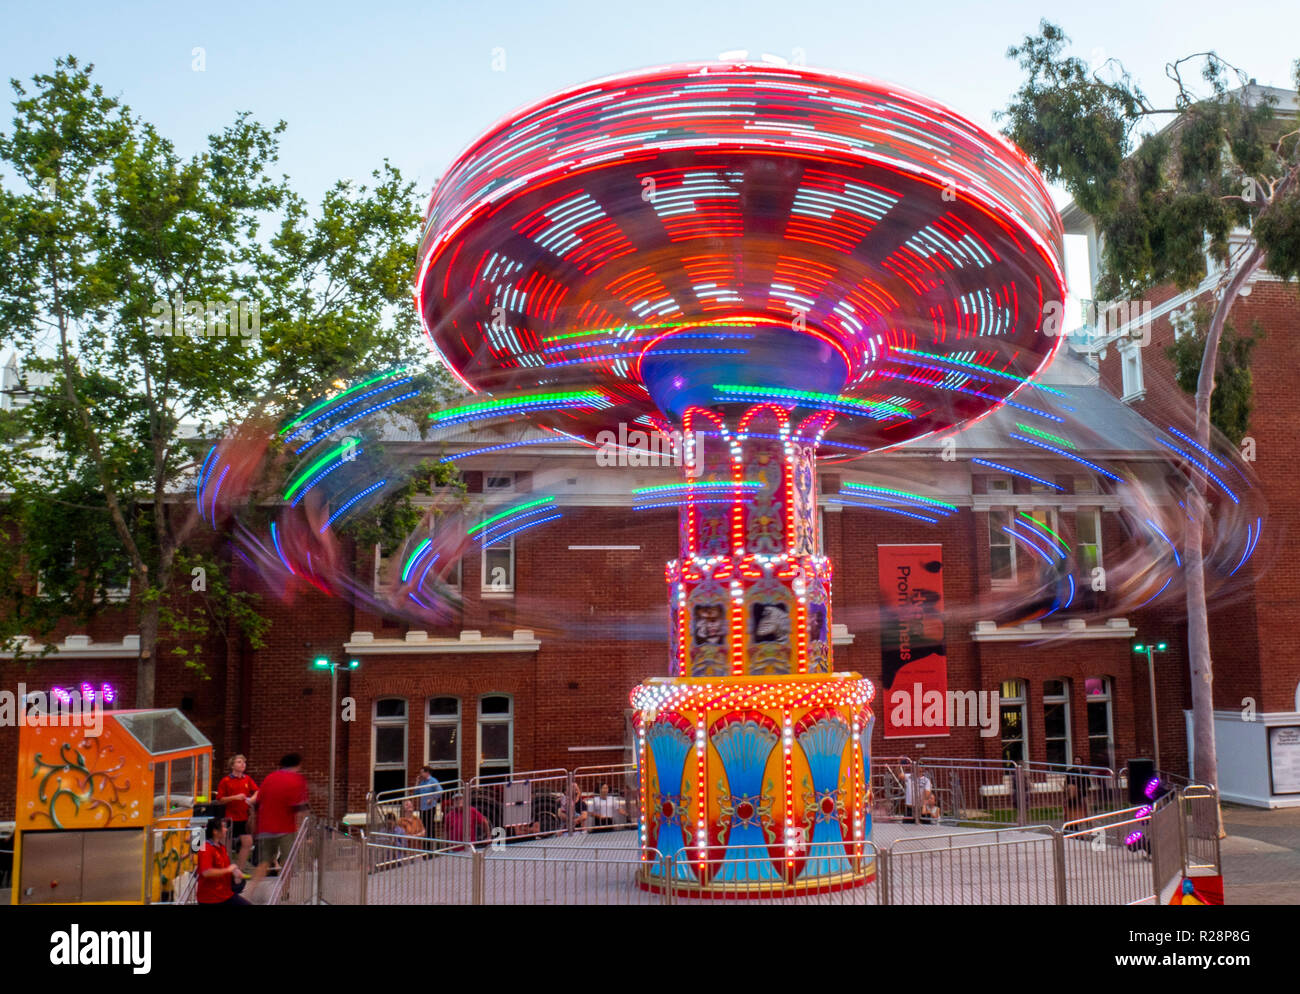 People riding a swing carousel ride Christmas festival Perth Cultural Centre Perth Western Australia. - Stock Image